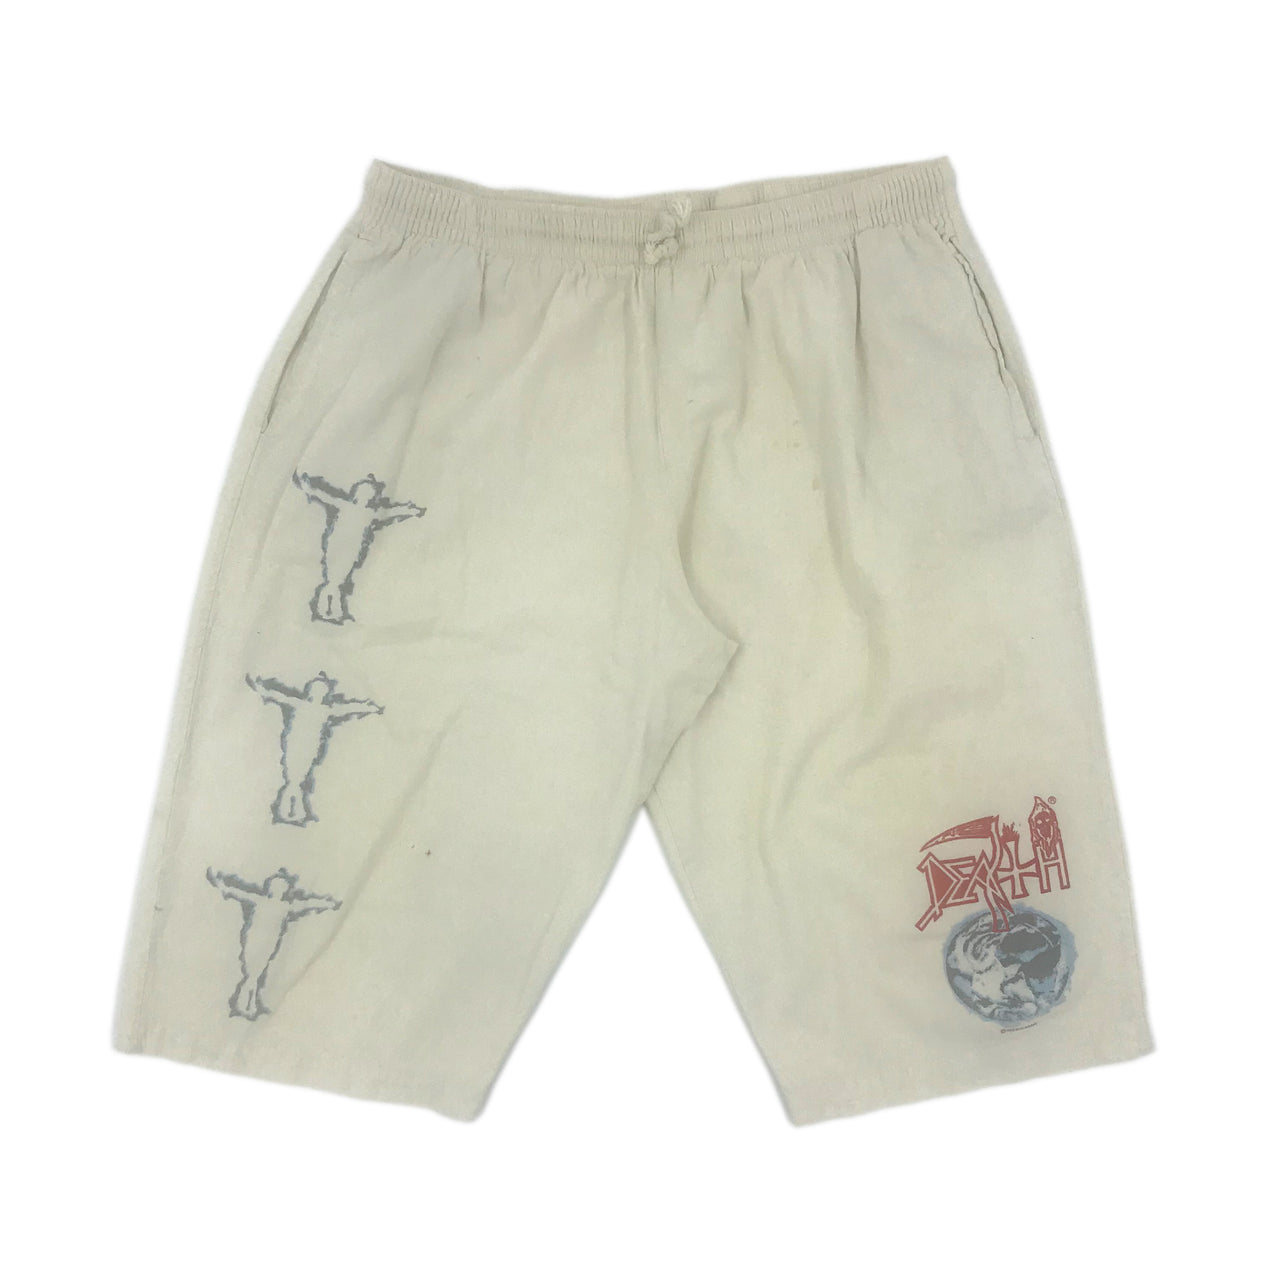 1993 Death 'Individual Thought Patterns' Shorts